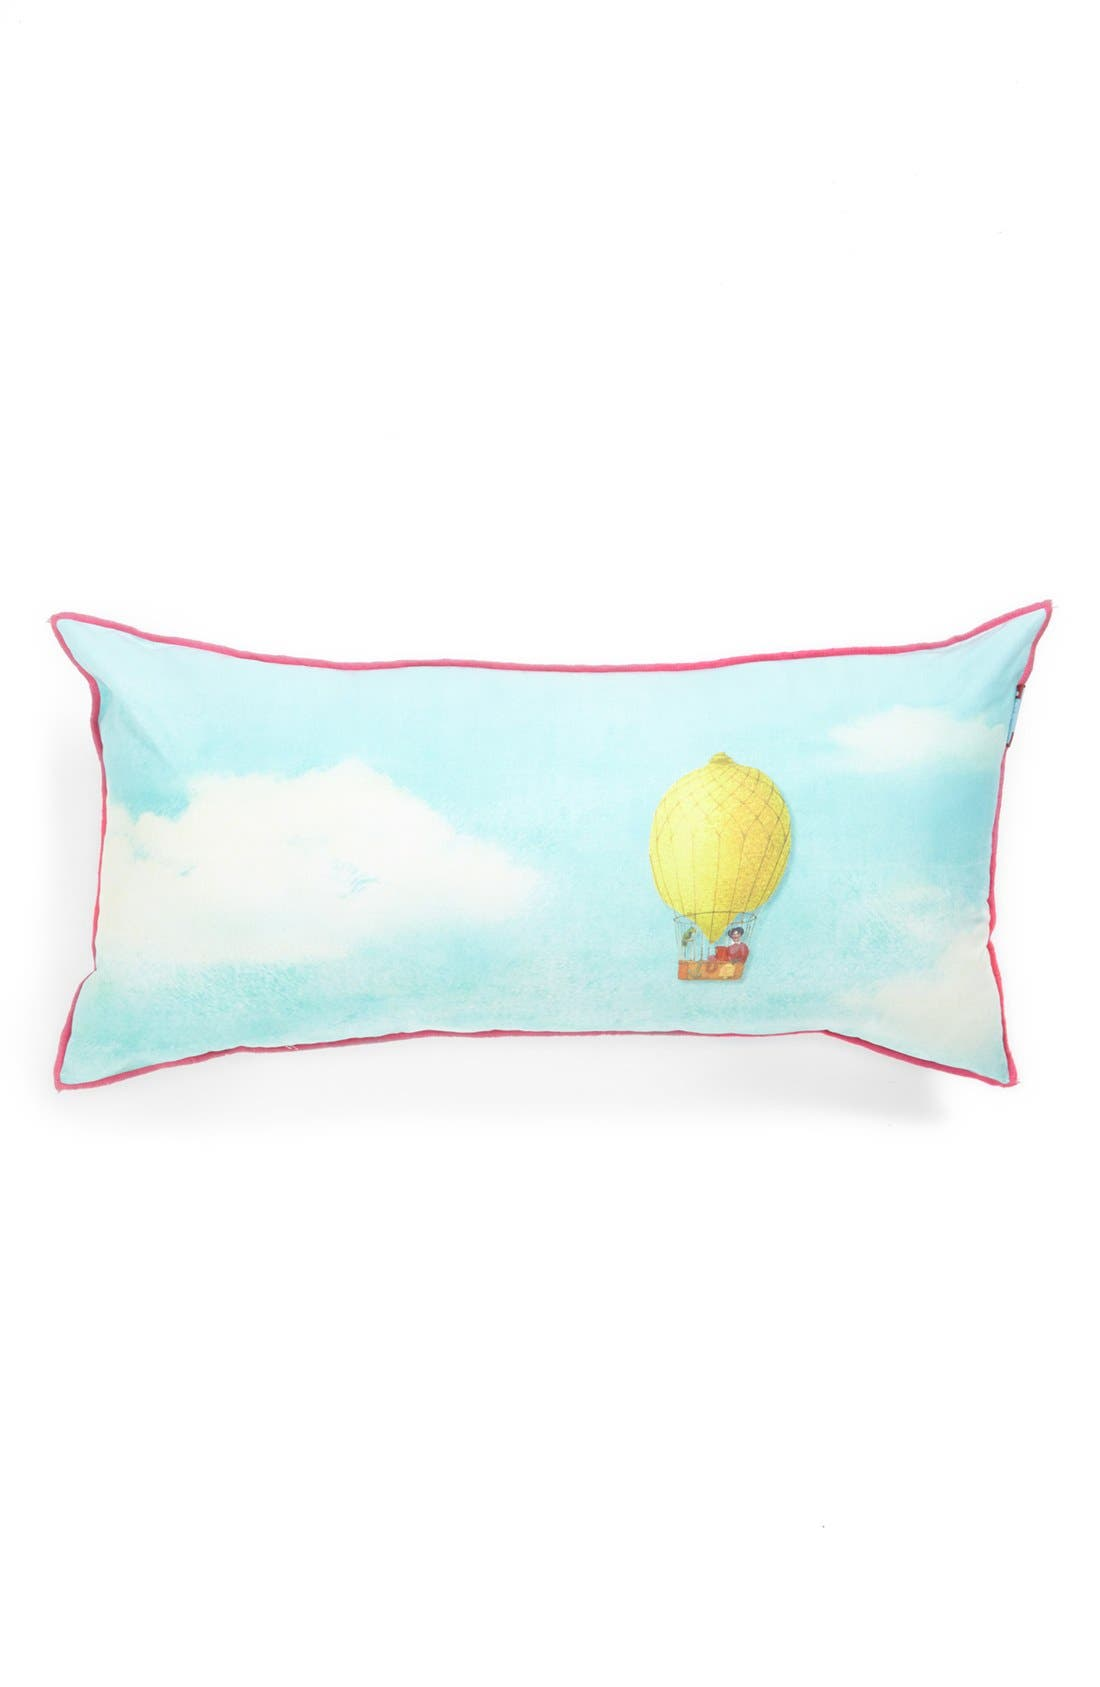 Main Image - PiP studio 'Royal PiP Land' Pillow